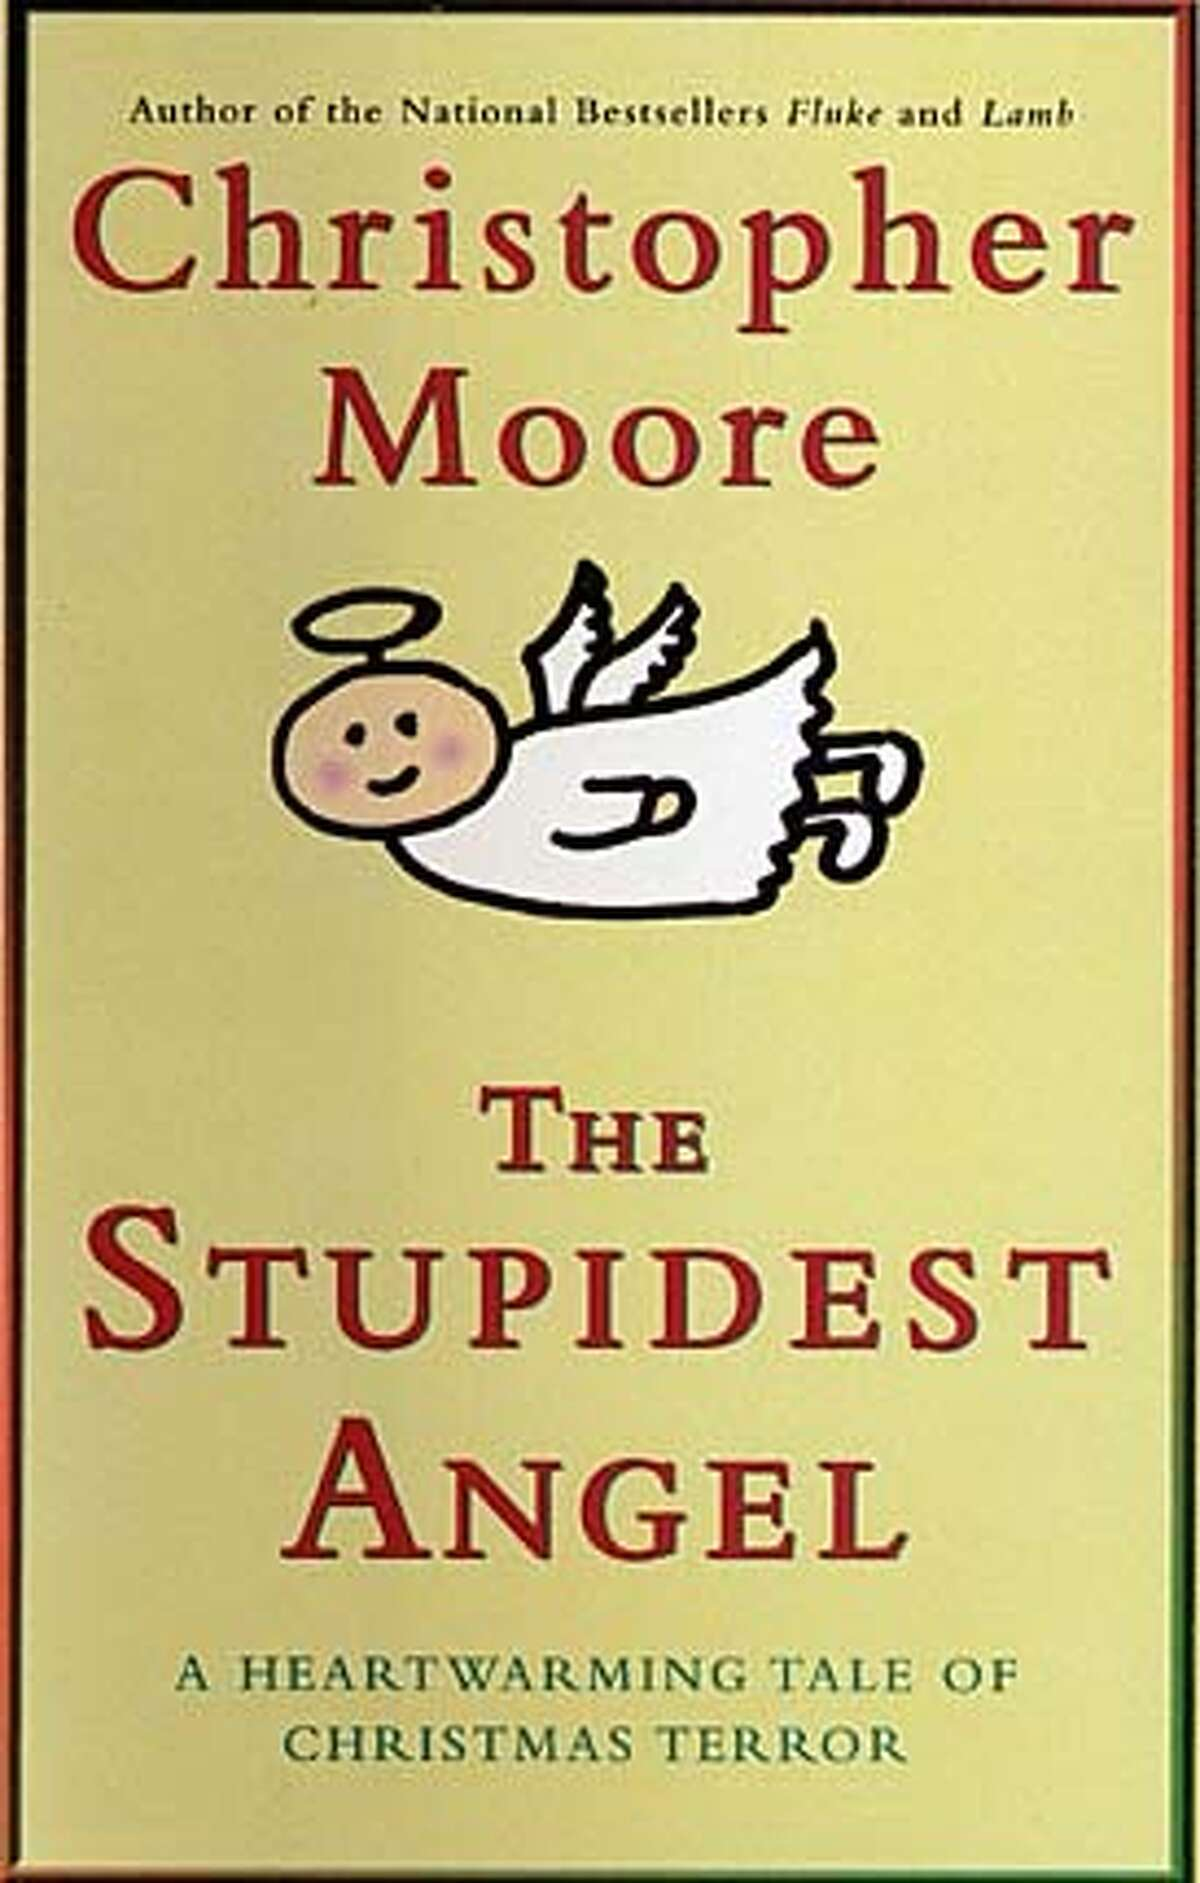 The Stupidest Angle by Christopher Moore BookReview#BookReview#Chronicle#11-07-2004#ALL#Advance#M6#0422449956 BookReview#BookReview#Chronicle#11-07-2004#ALL#Advance#M6#0422449956